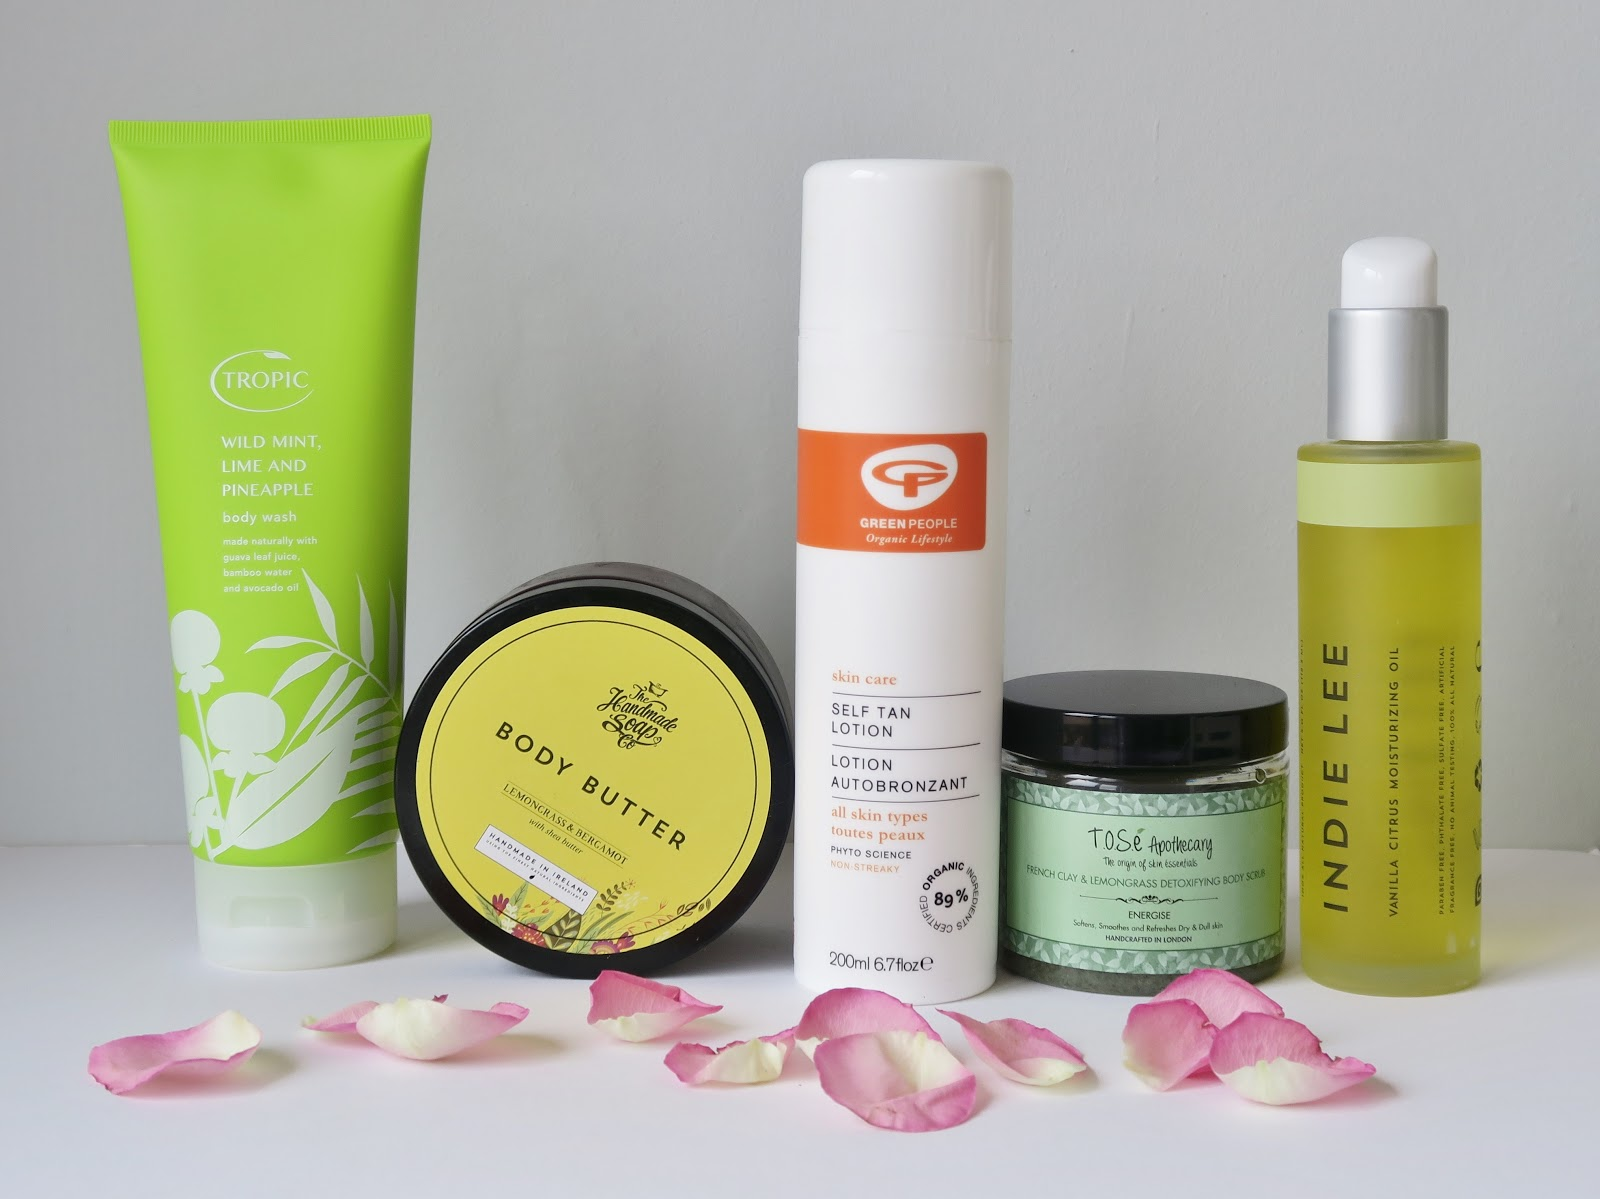 http://www.thisnaturalbee.co.uk/2017/05/natural-body-products-for-spring.html